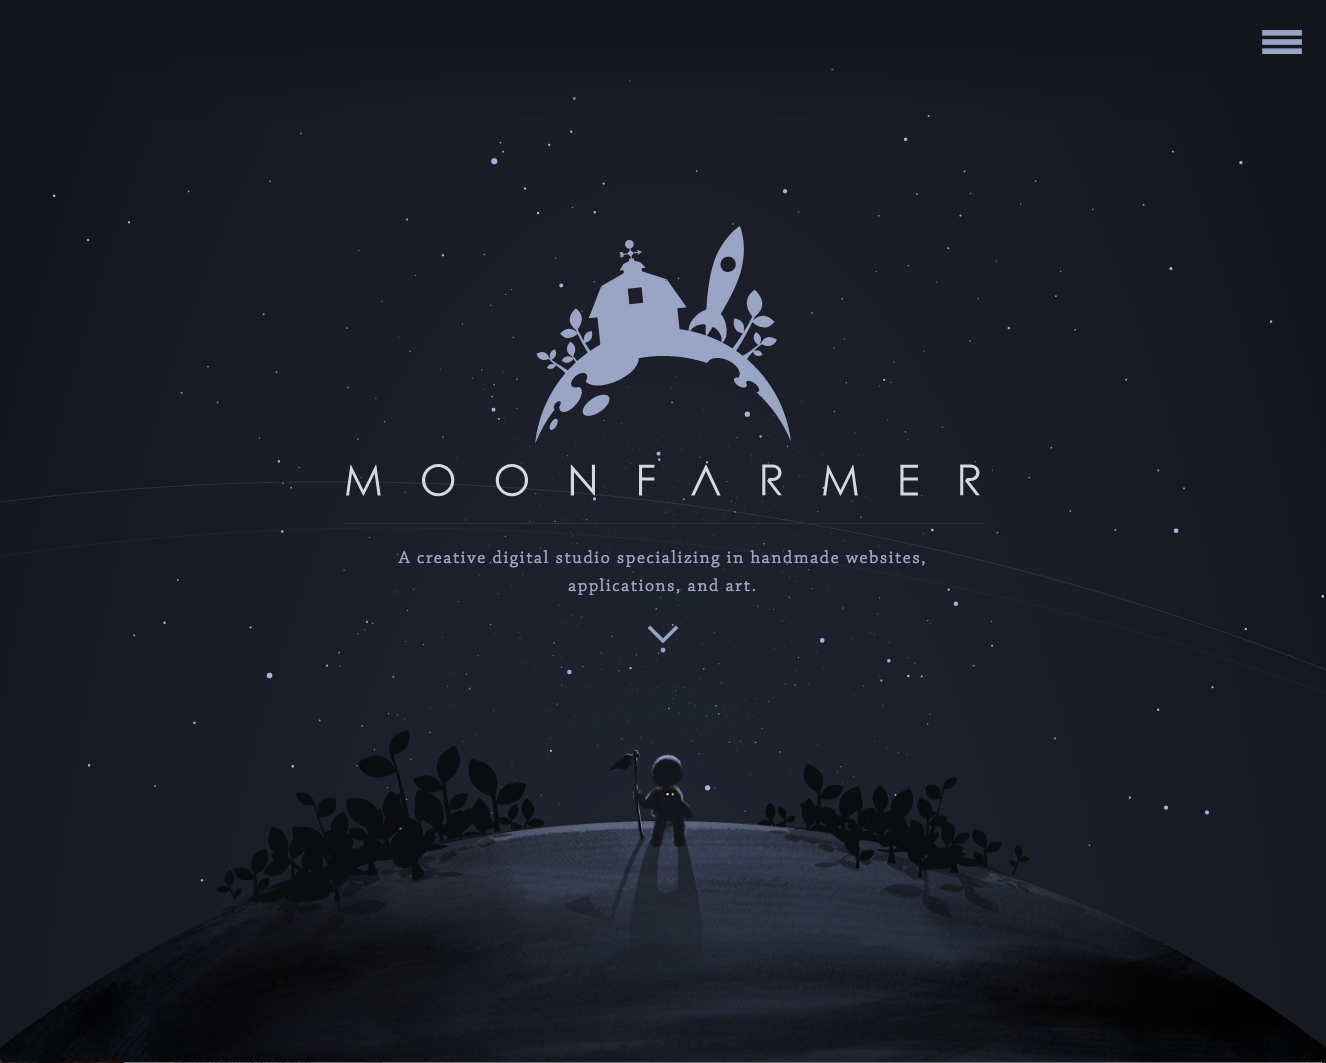 Moonfarmer Website